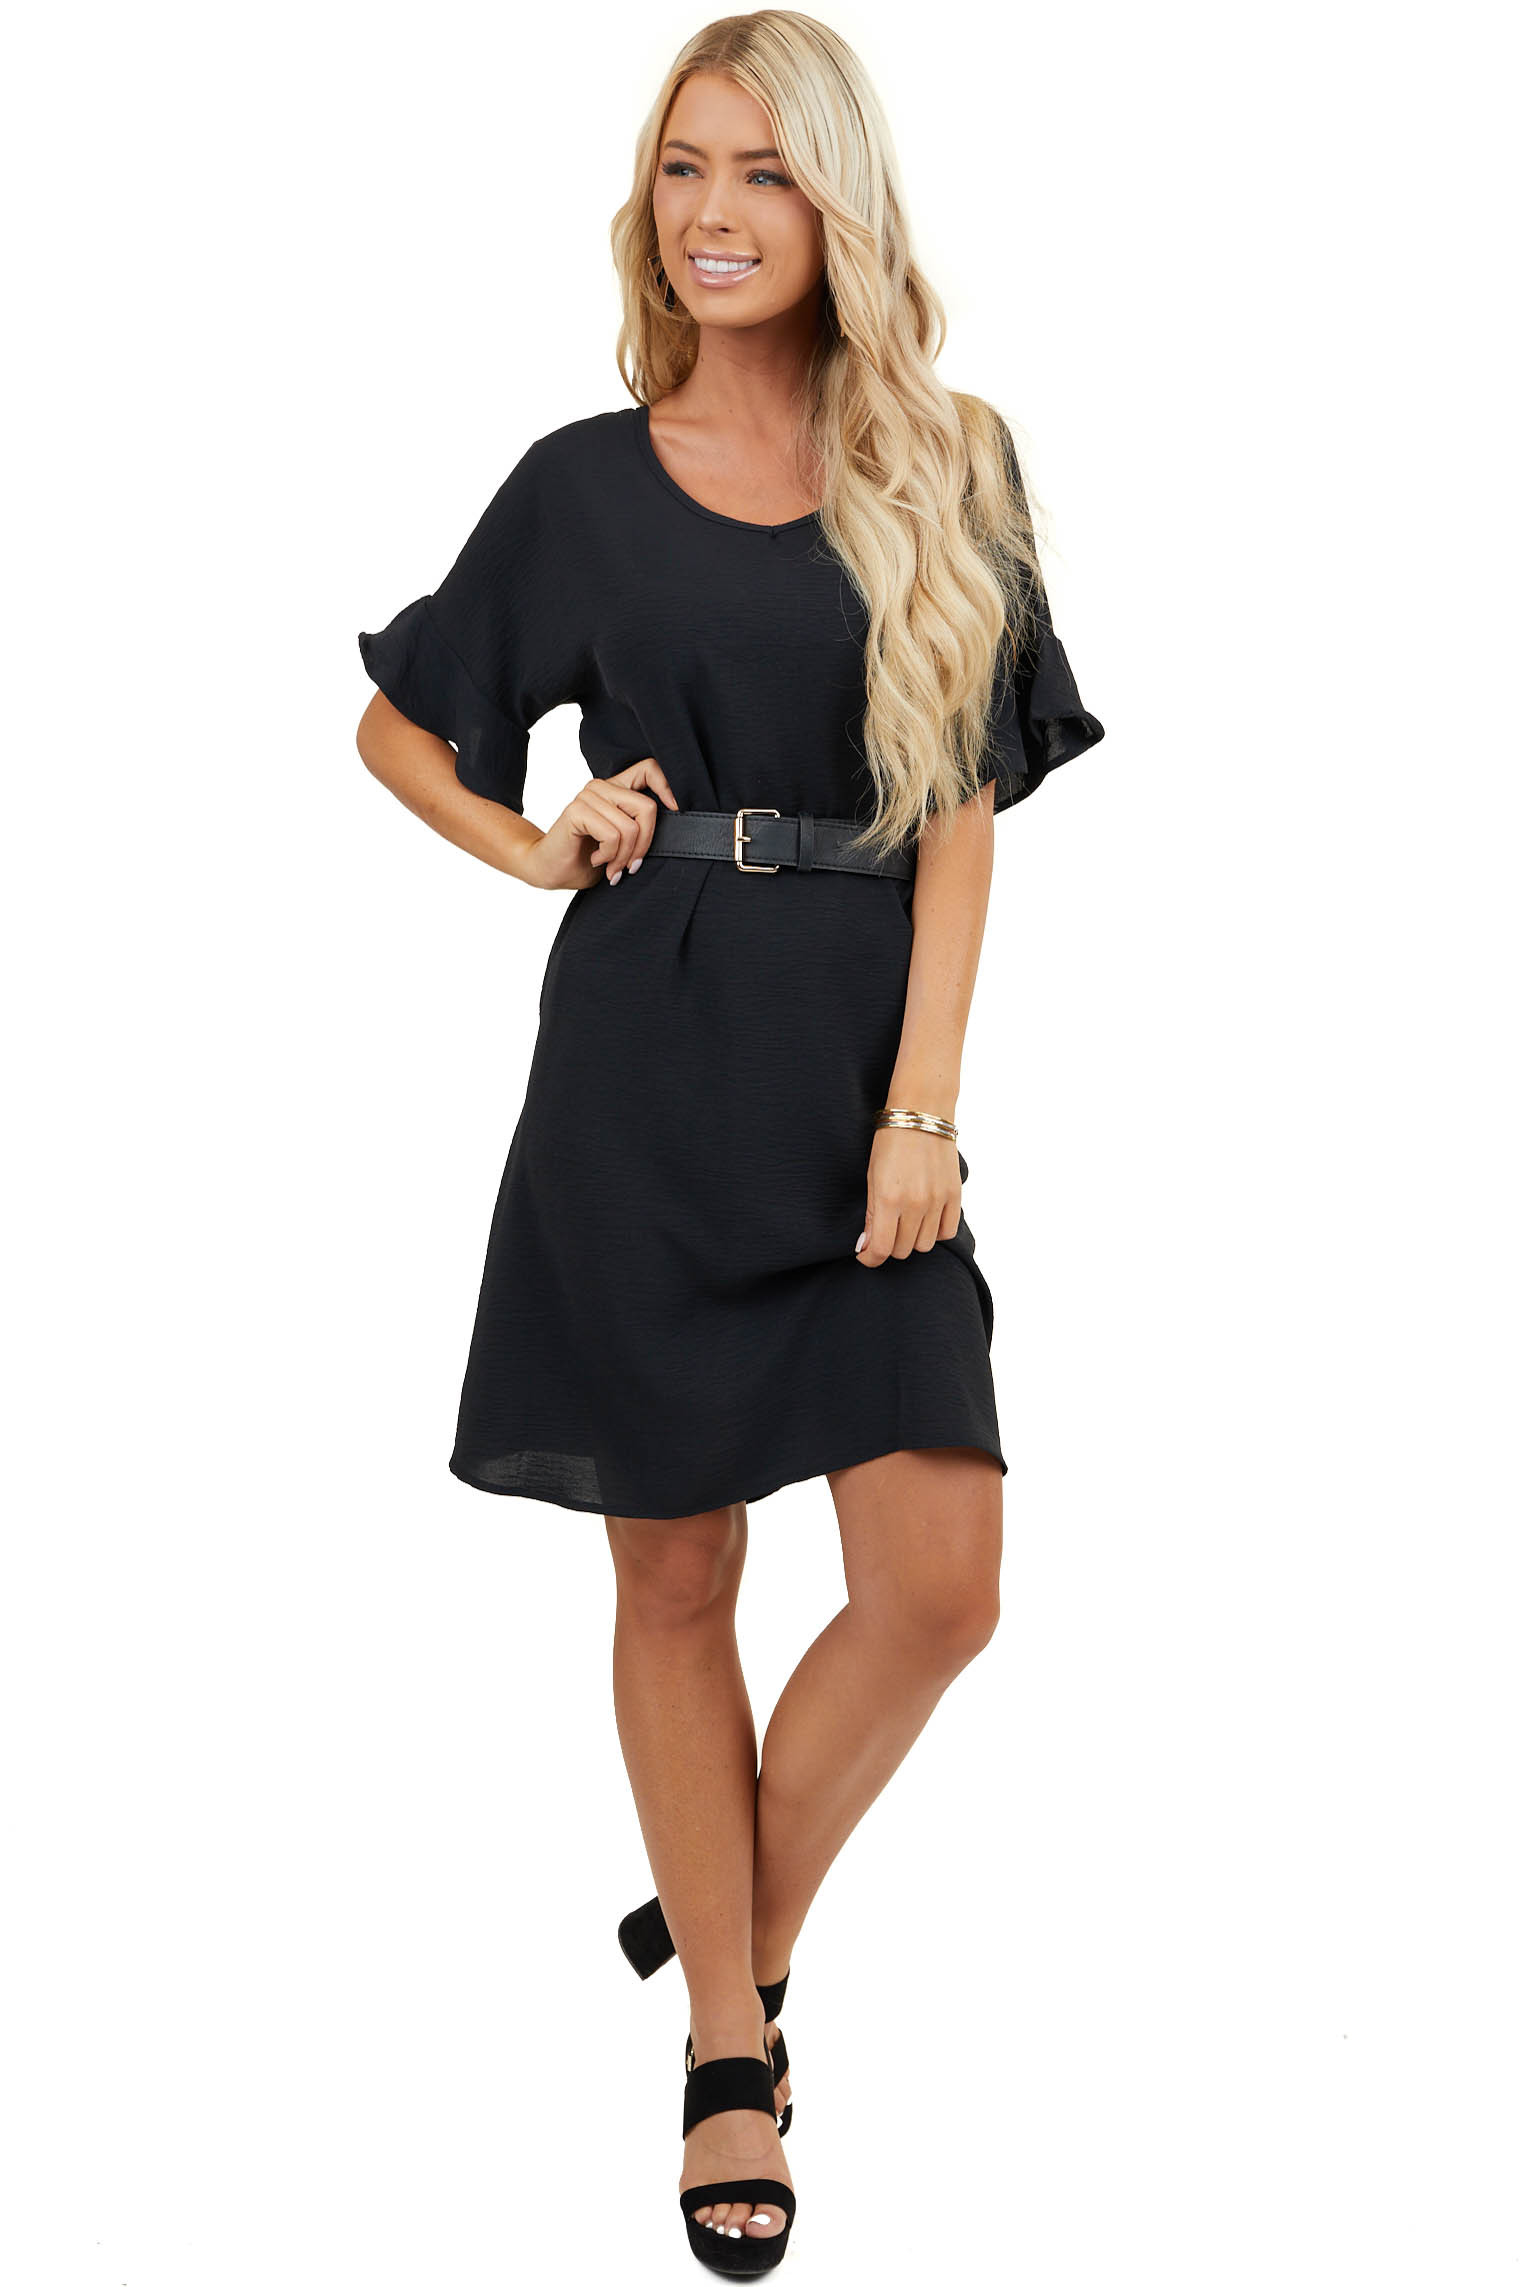 Black Short Woven Dress with V Neck and Short Ruffle Sleeves